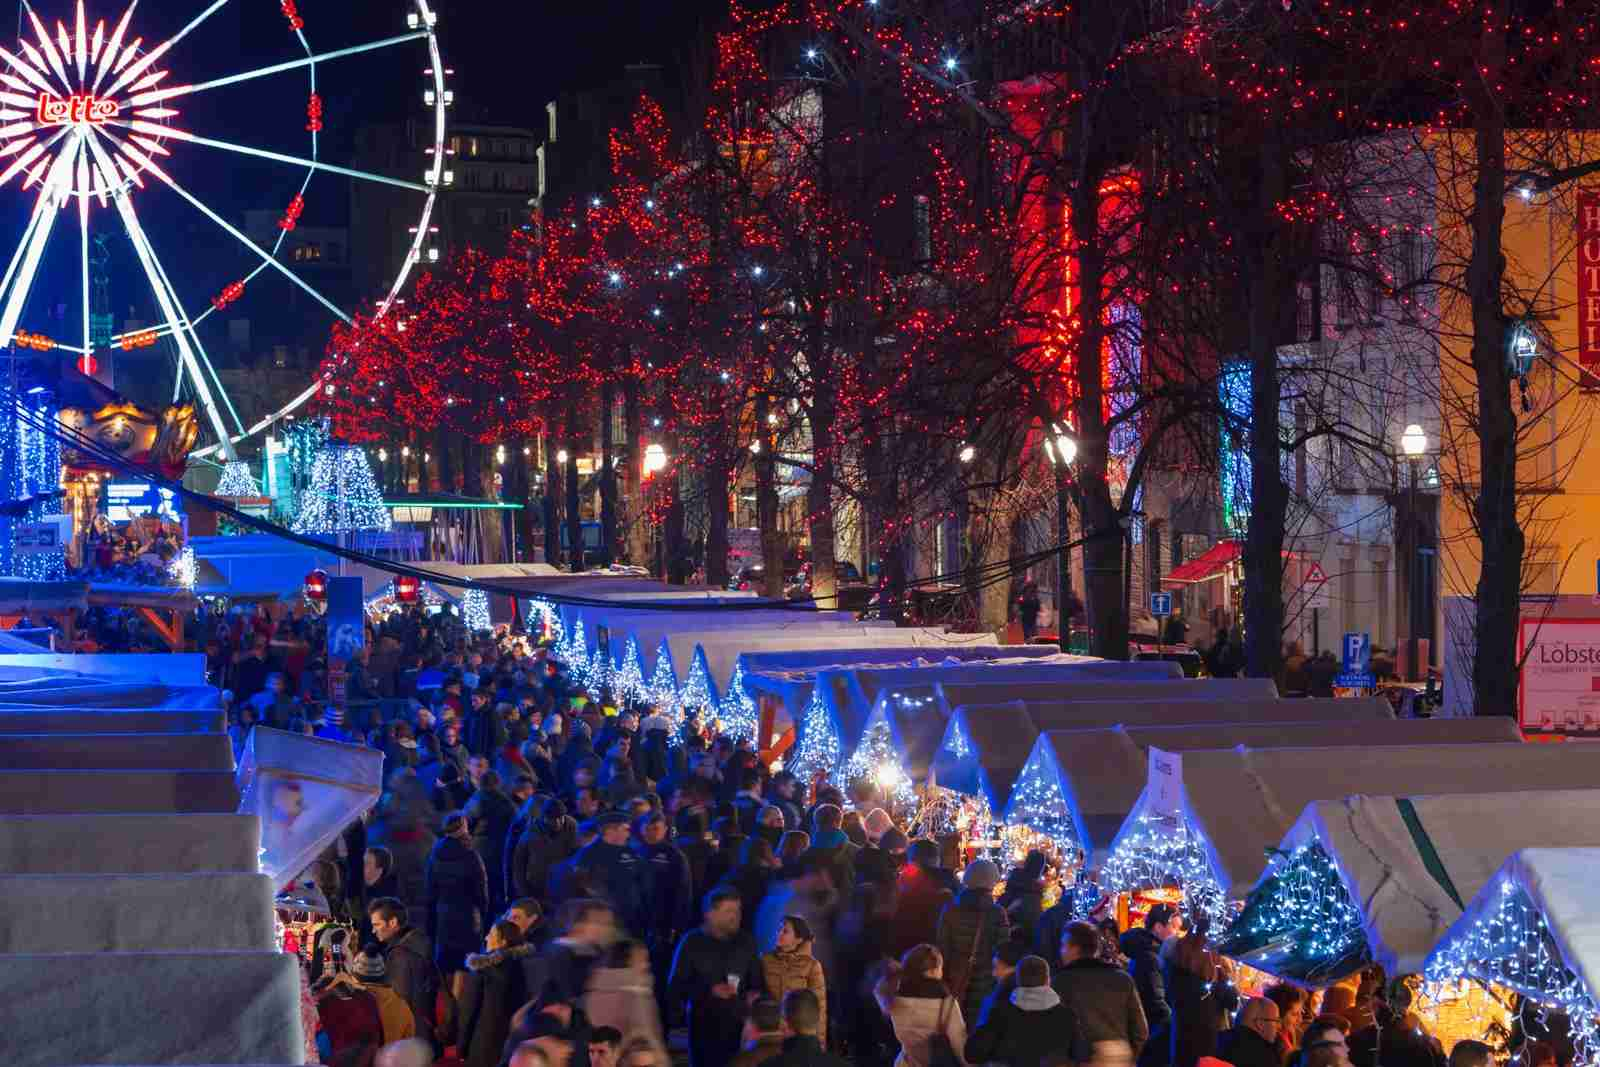 Christmas Market in Place Sainte Catherine in Brussels. (Photo by Jon Hicks/Getty Images)